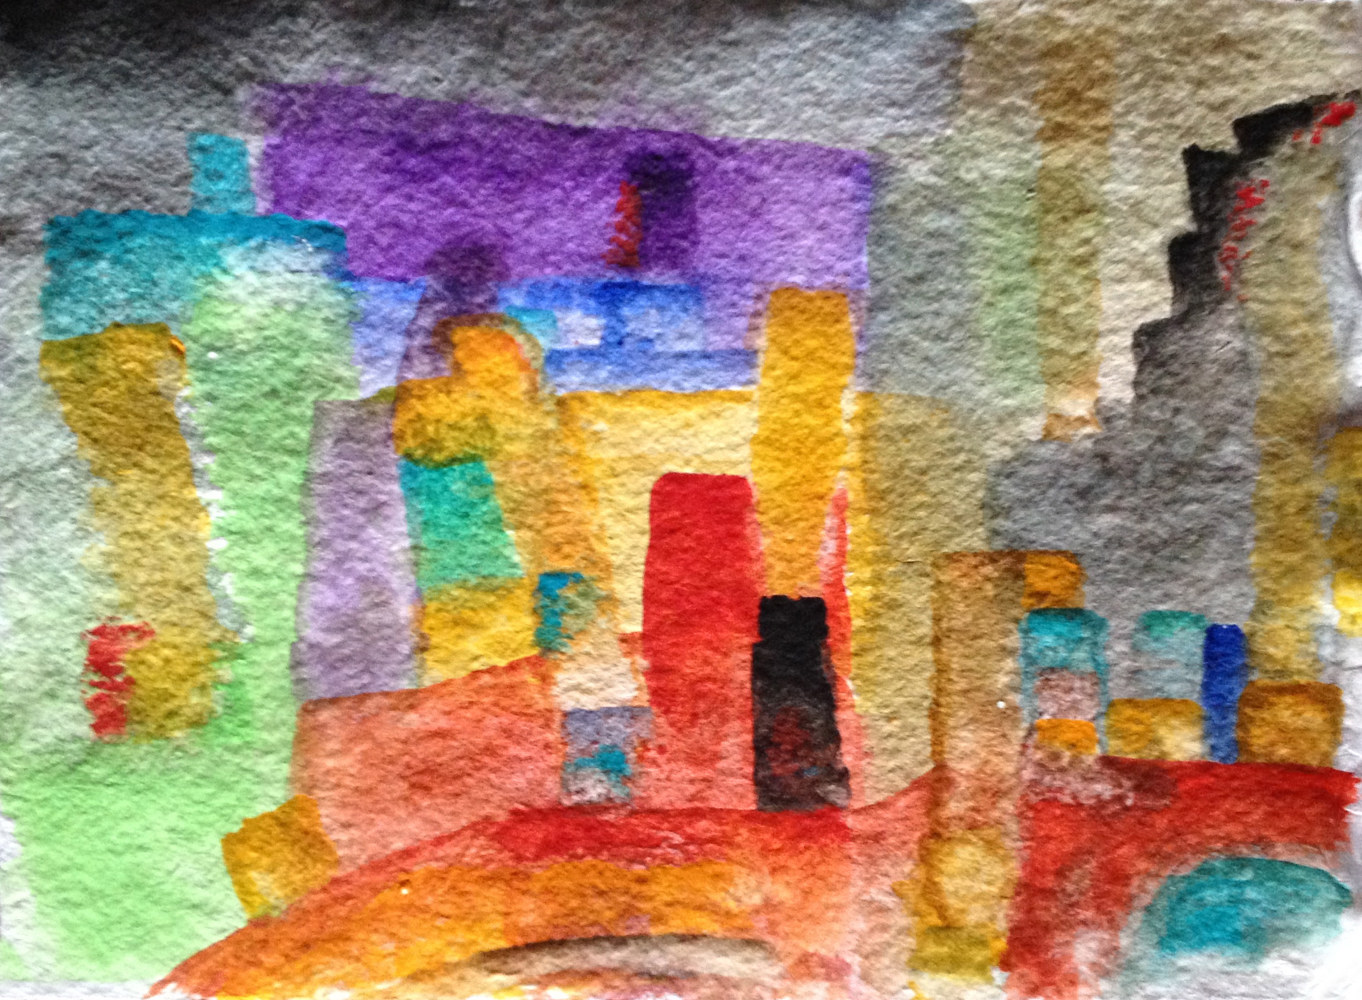 Watercolor The Golden Towers | Les Tours Dorées by Nathalie Gribinski